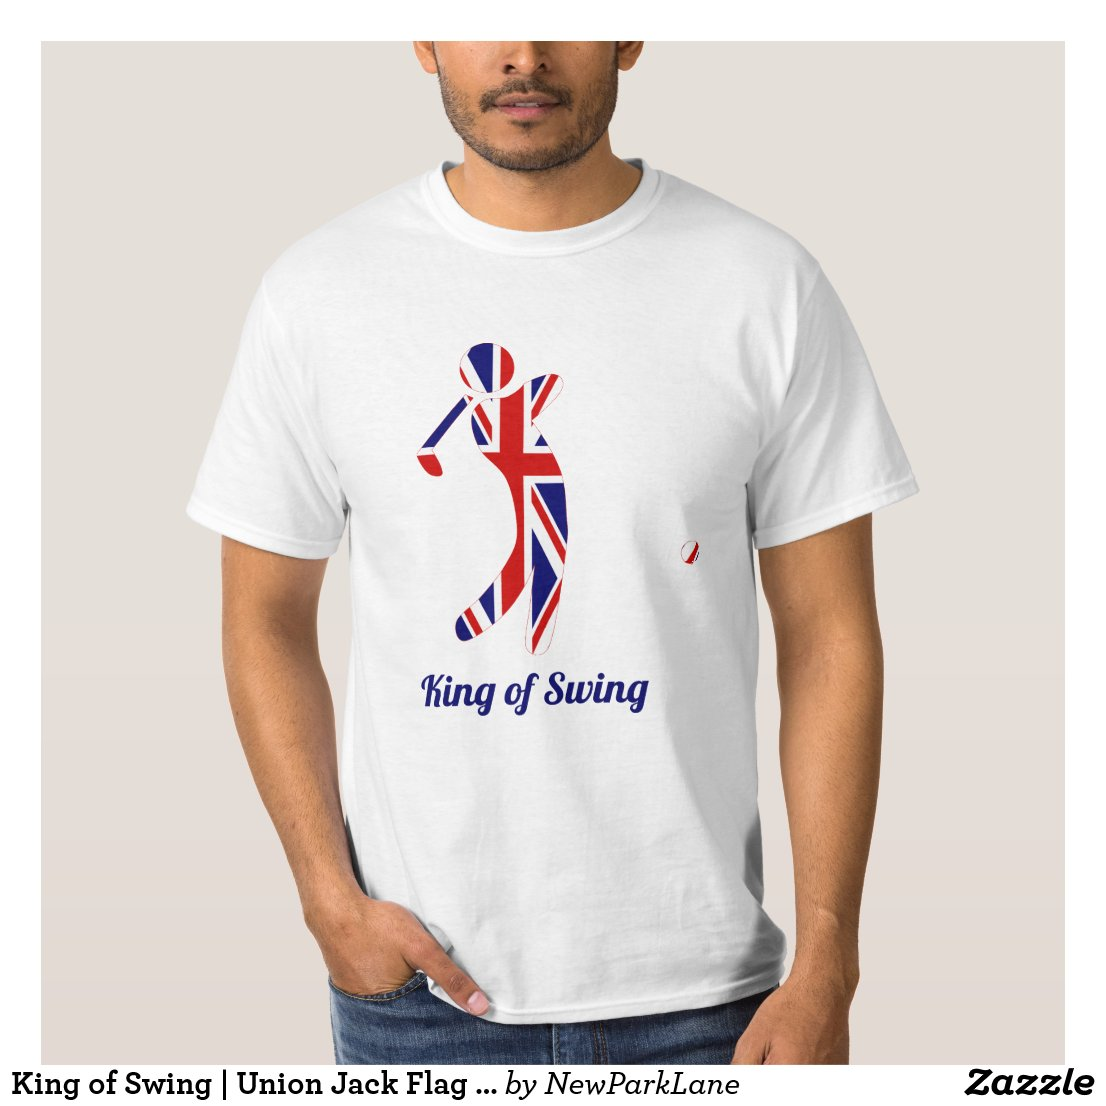 King of Swing | Union Jack Flag Golfer Silhouette T-Shirt